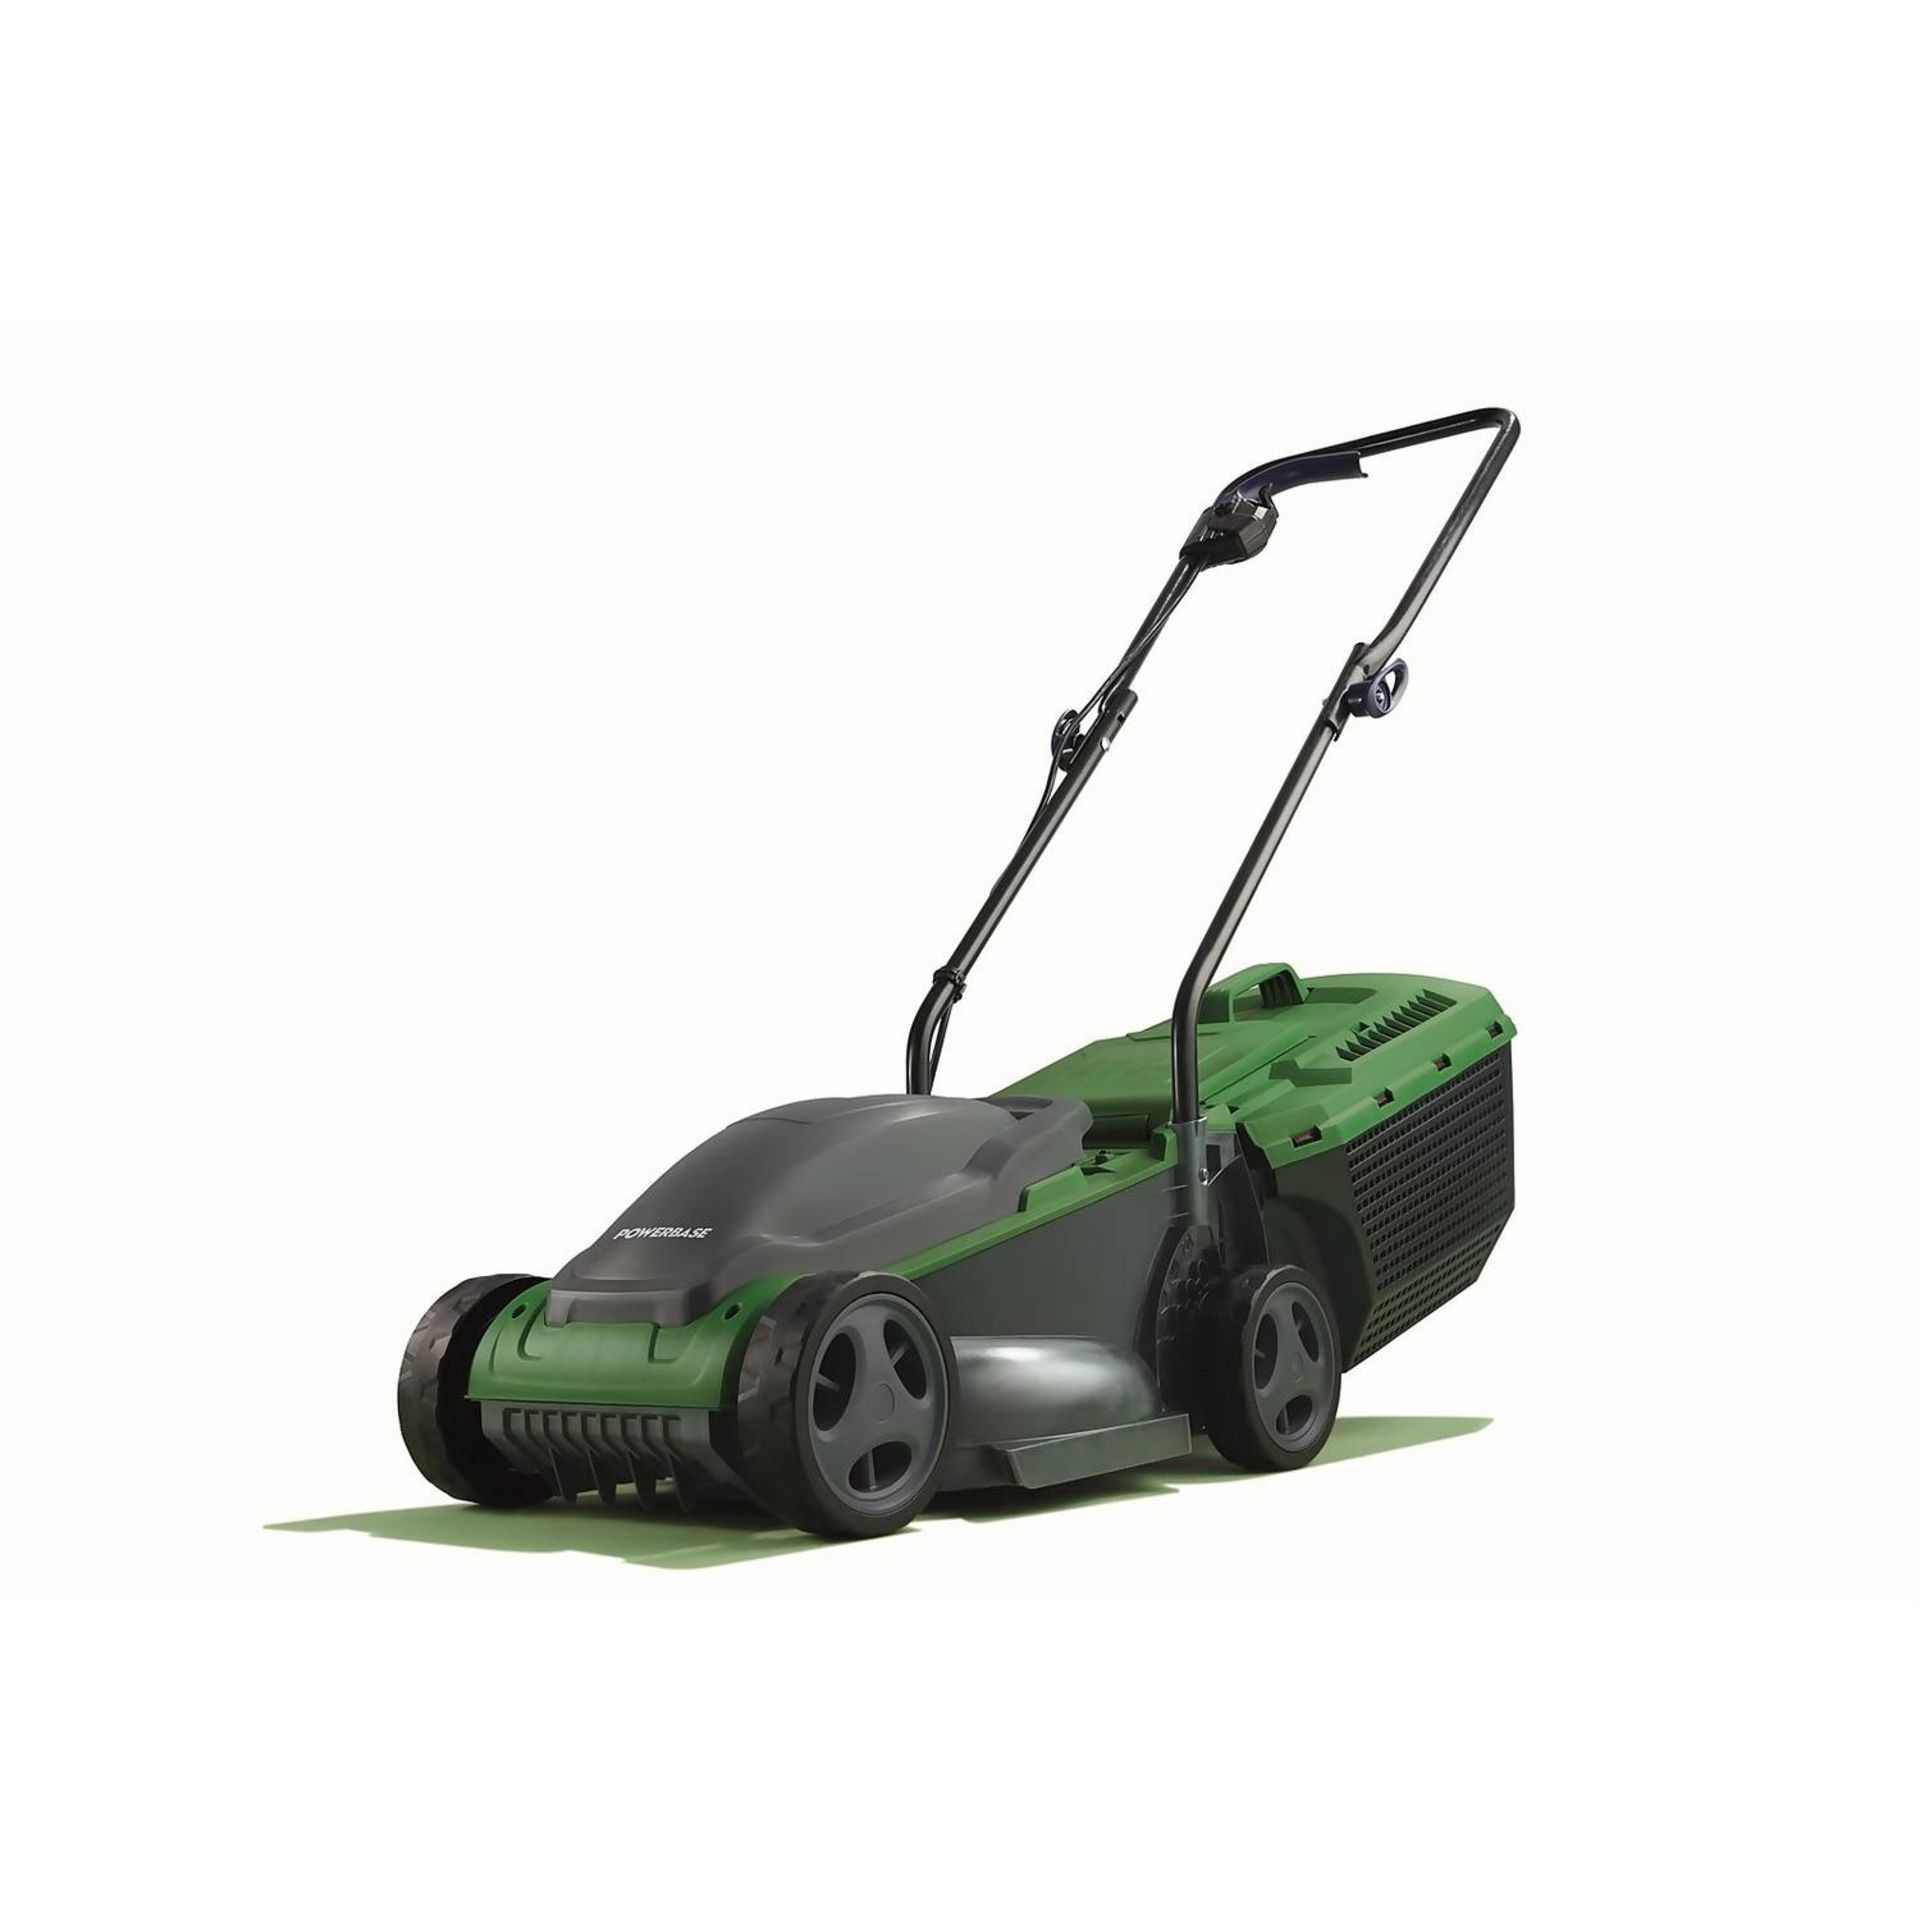 (P8) 1x Powerbase 32cm 1200W Electric Rotary Lawnmower RRP £59. Contents Appear As New, Clean & Not